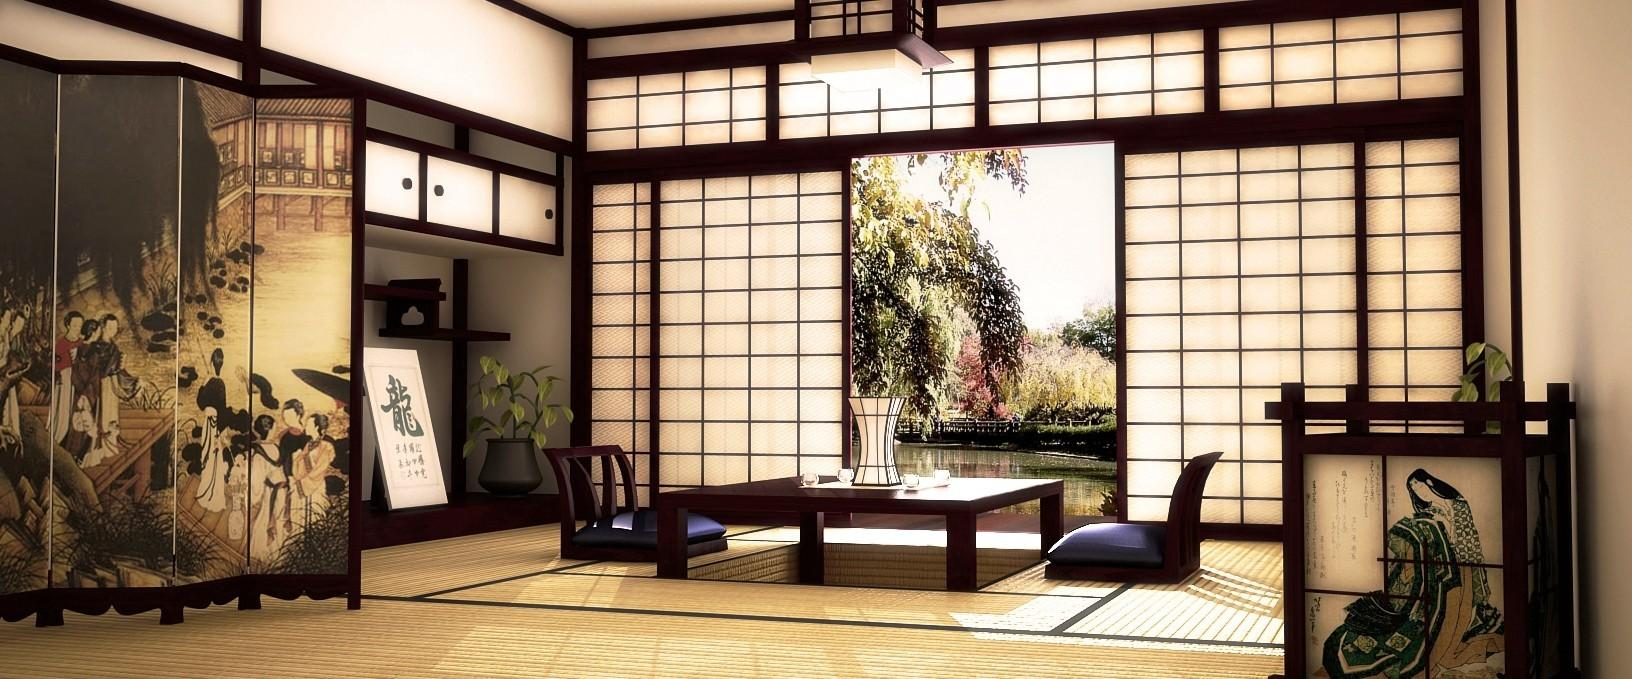 Get Closer Traditional Japanese Style Dining Room Decoratorist 6397